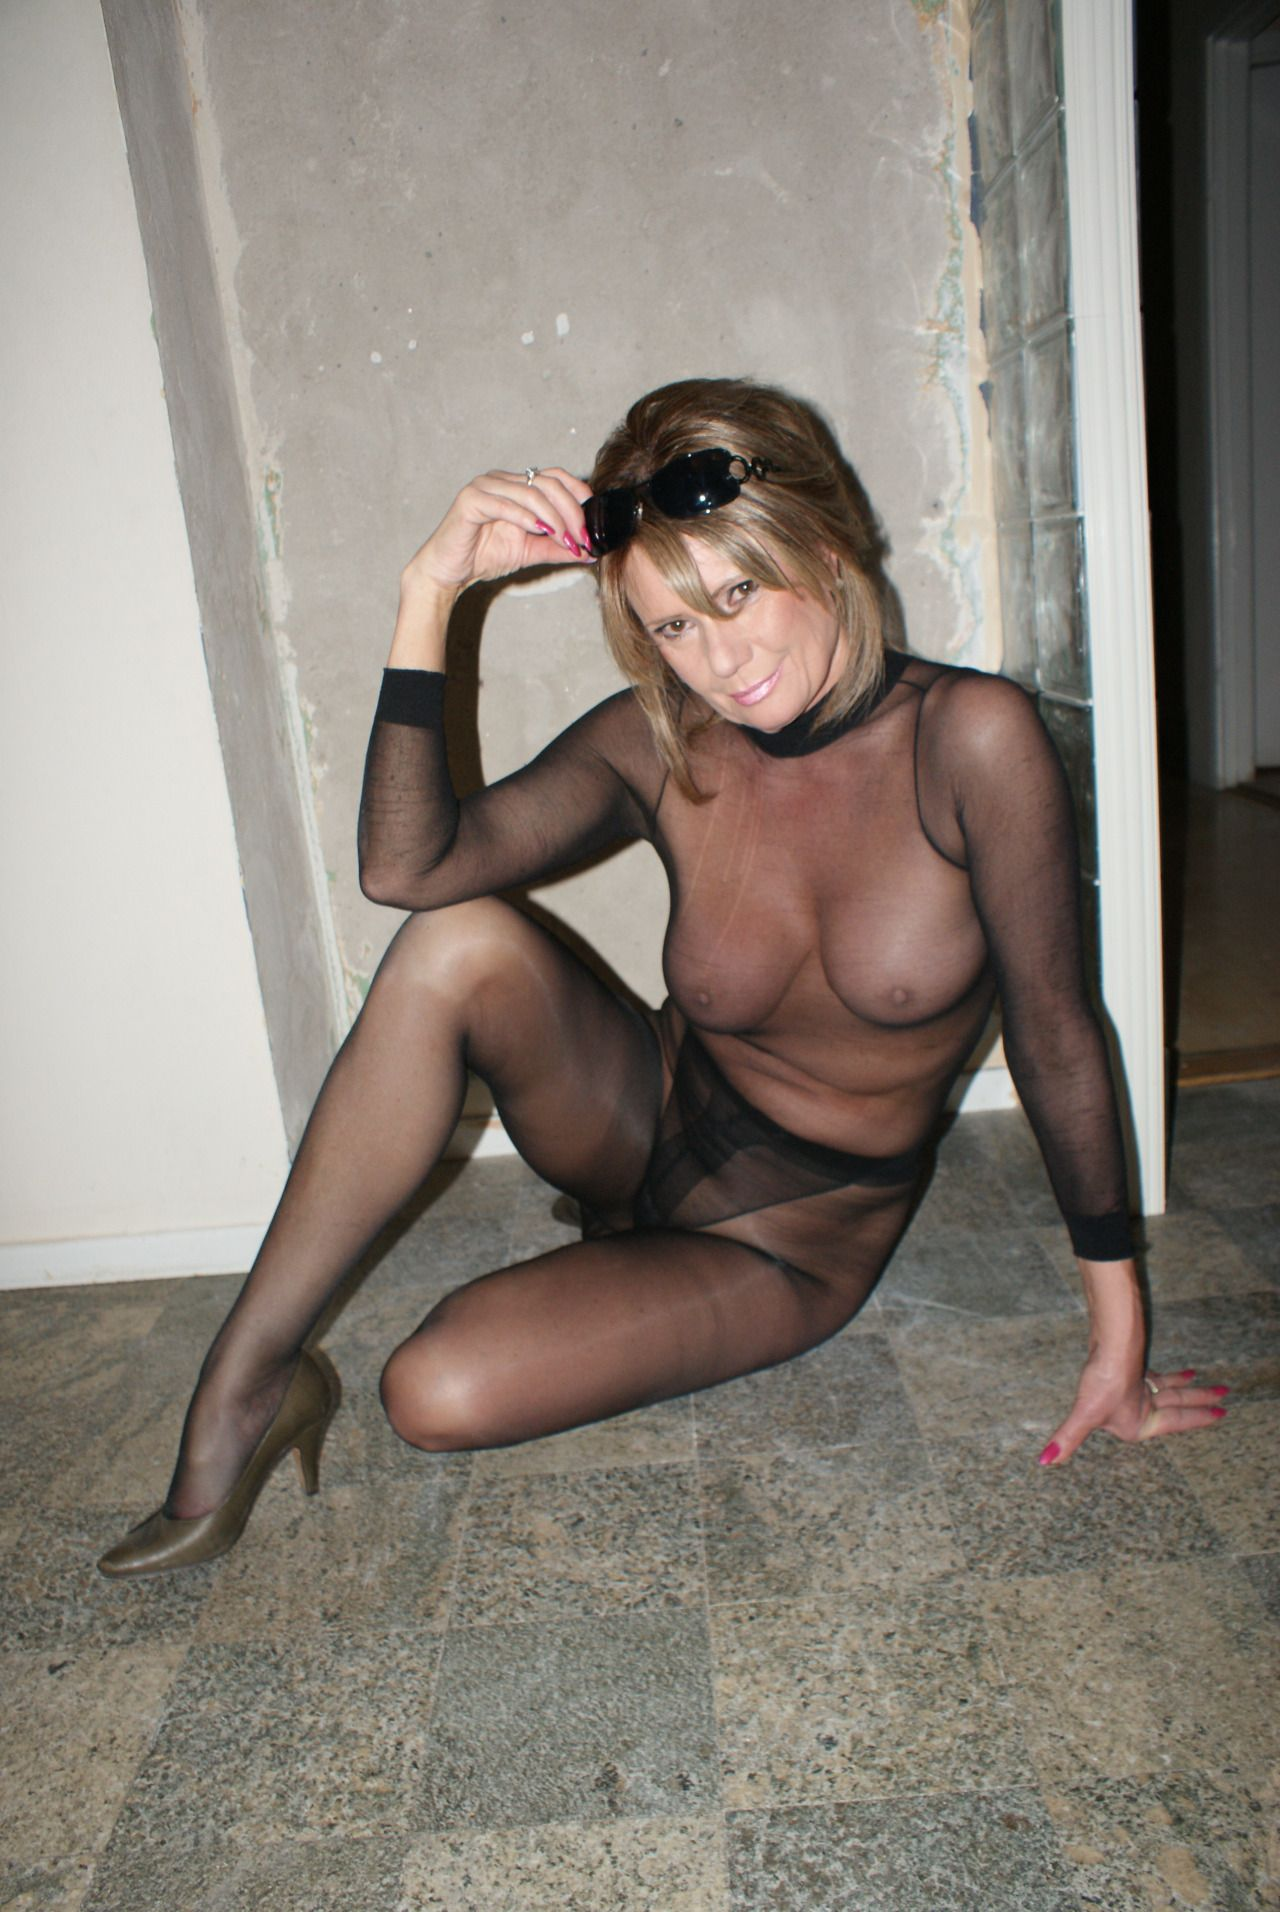 Go-Pantyhose-World Geil   Hoes Legz  Sexy, Women, Tights-1347